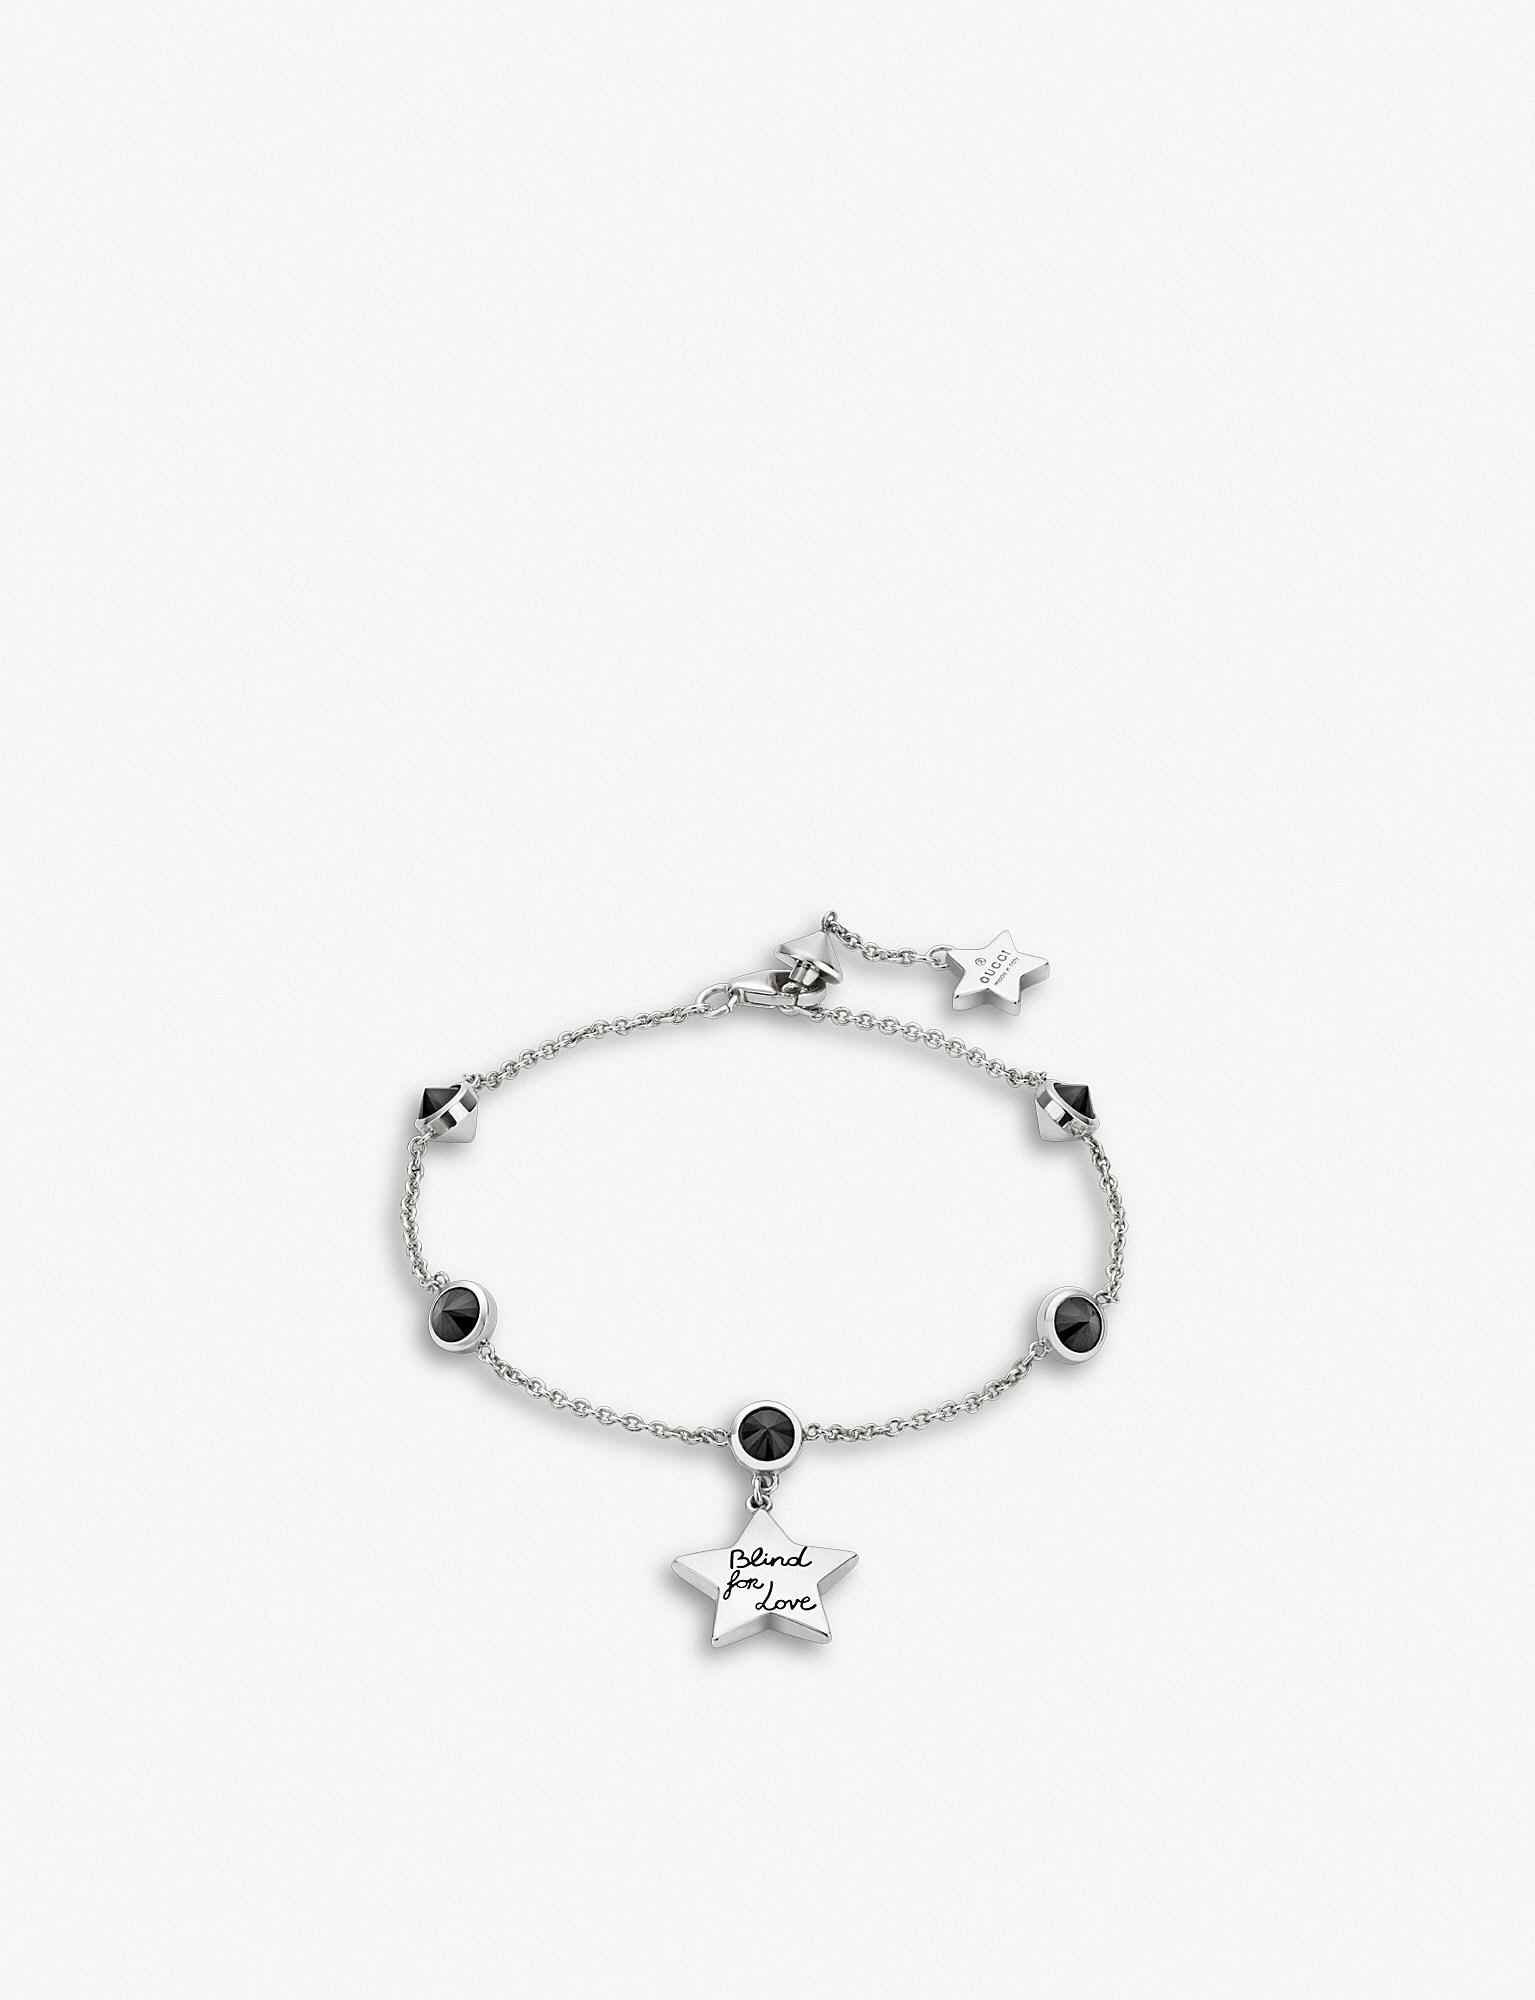 66391f454 Gucci Blind For Love Star Sterling Silver And Black Spinel Stone ...